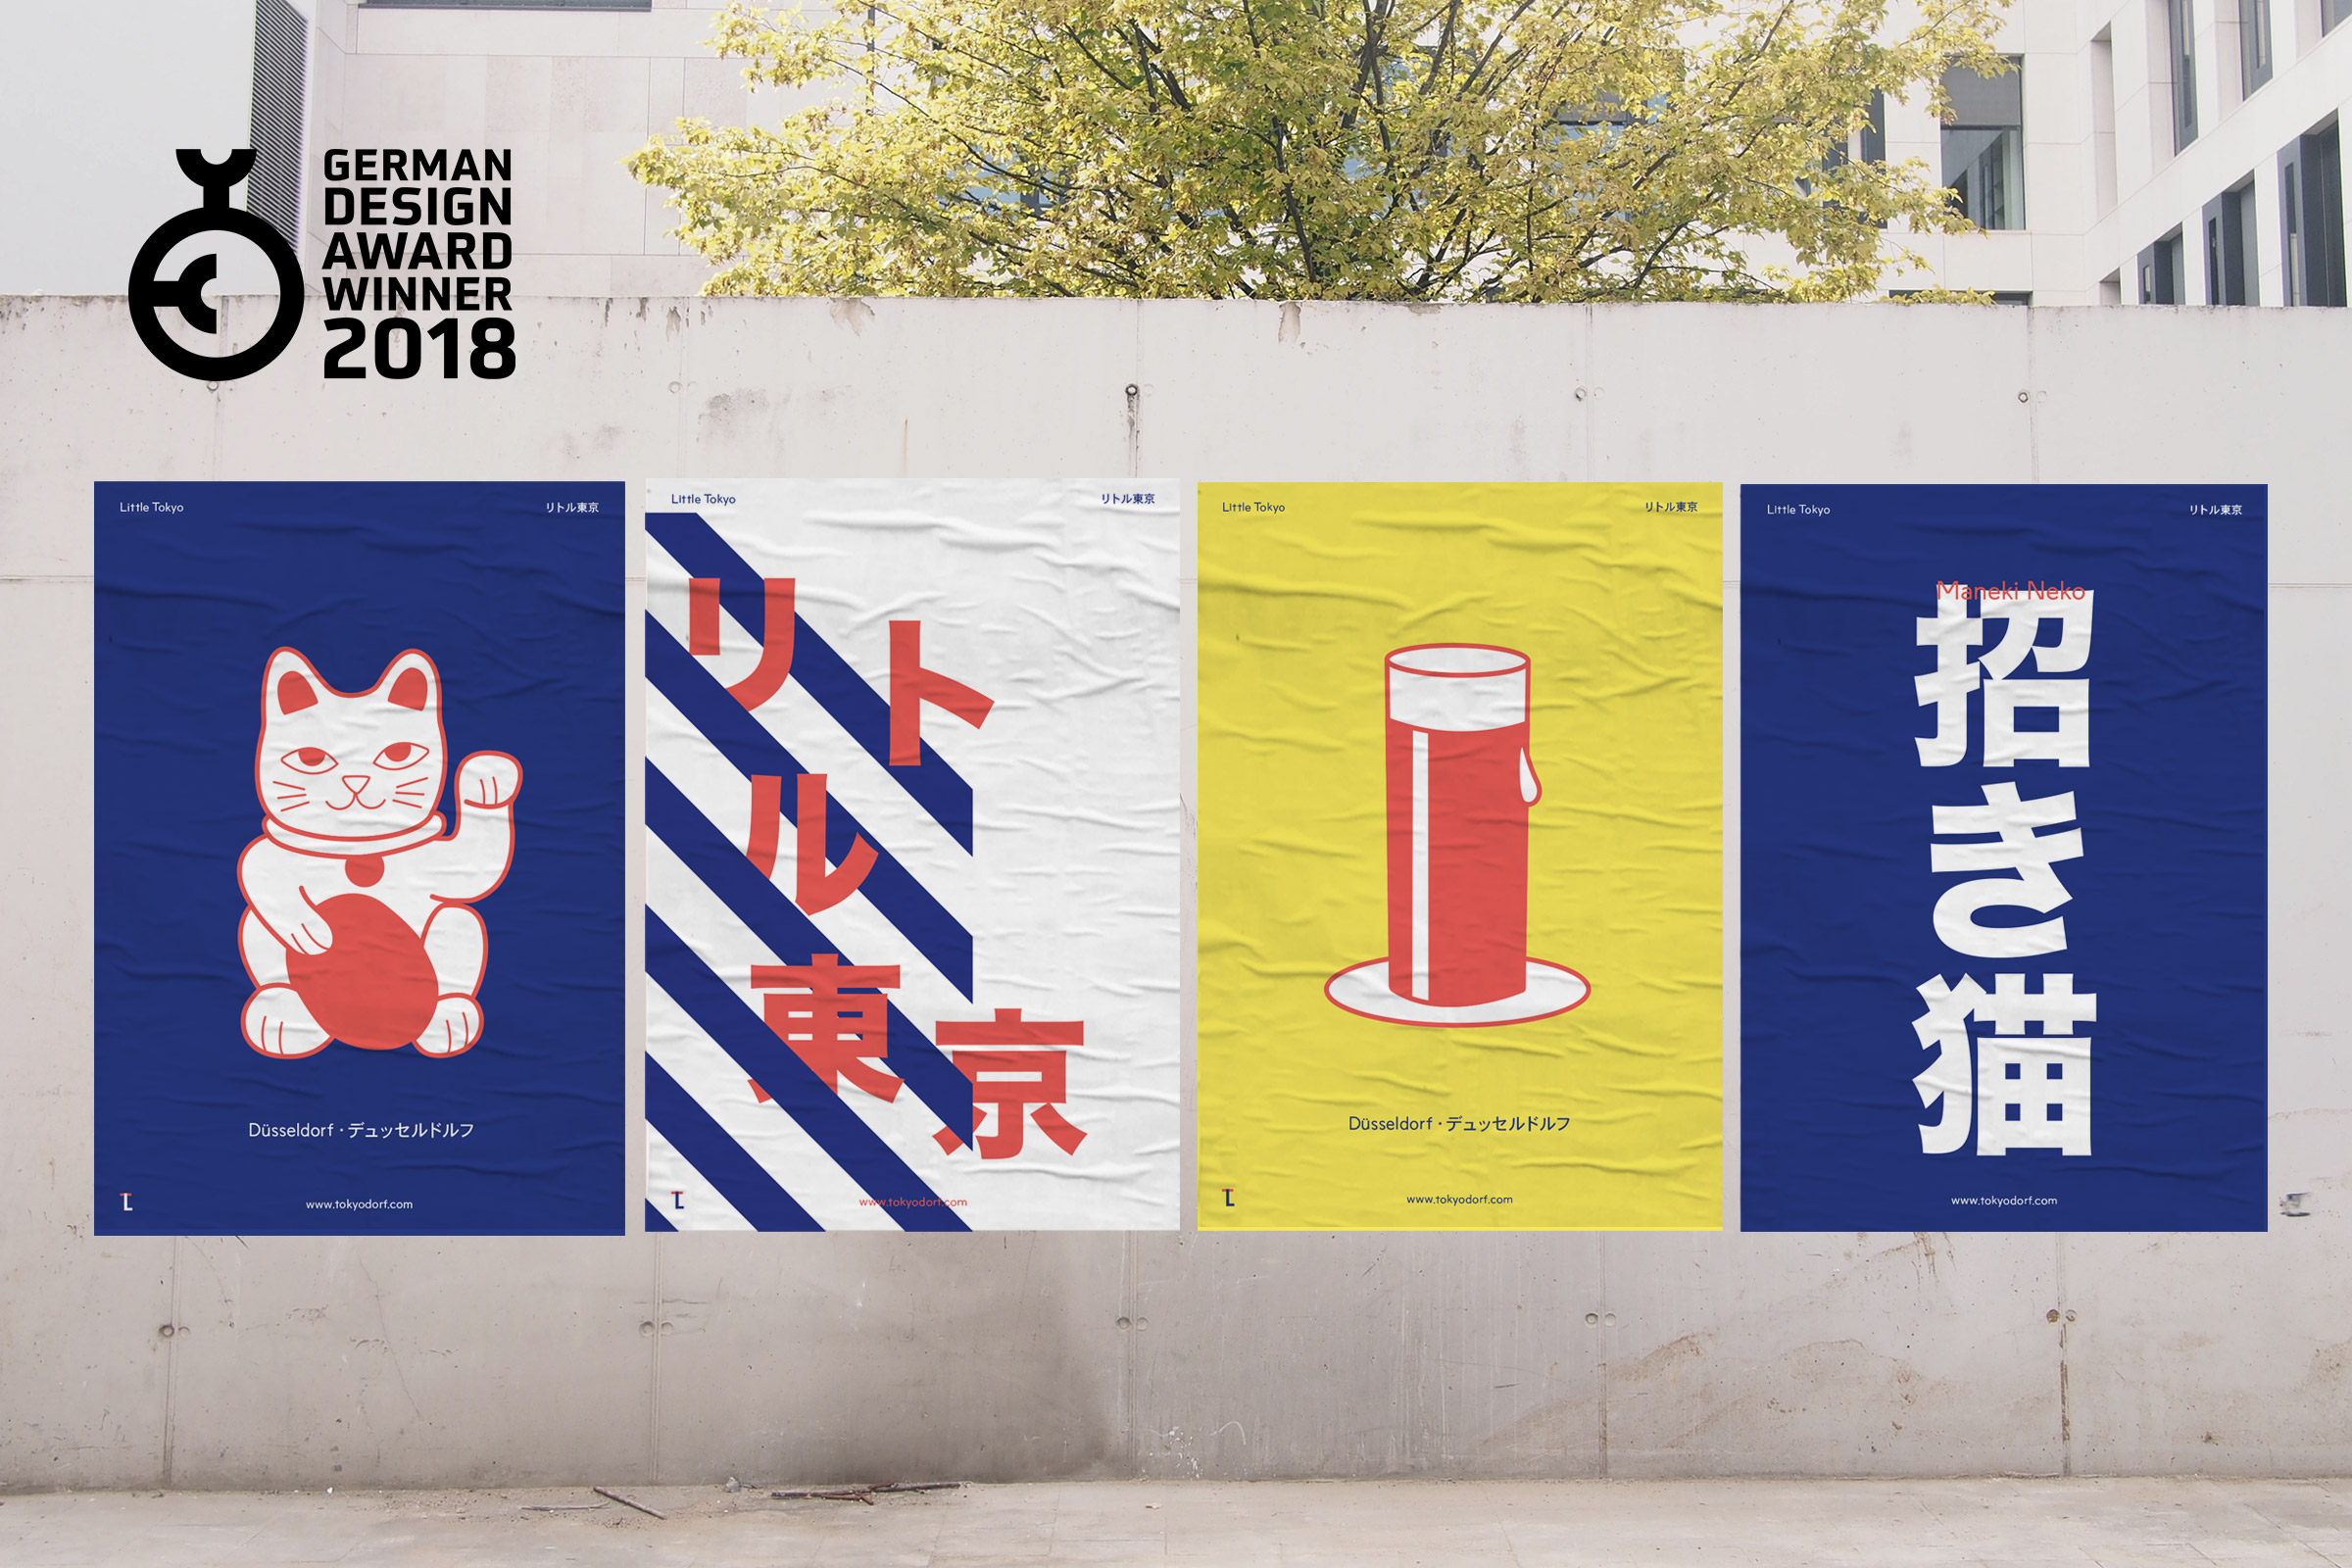 German Design Award, Little Tokyo, Düsseldorf, Poster Design, Illustration